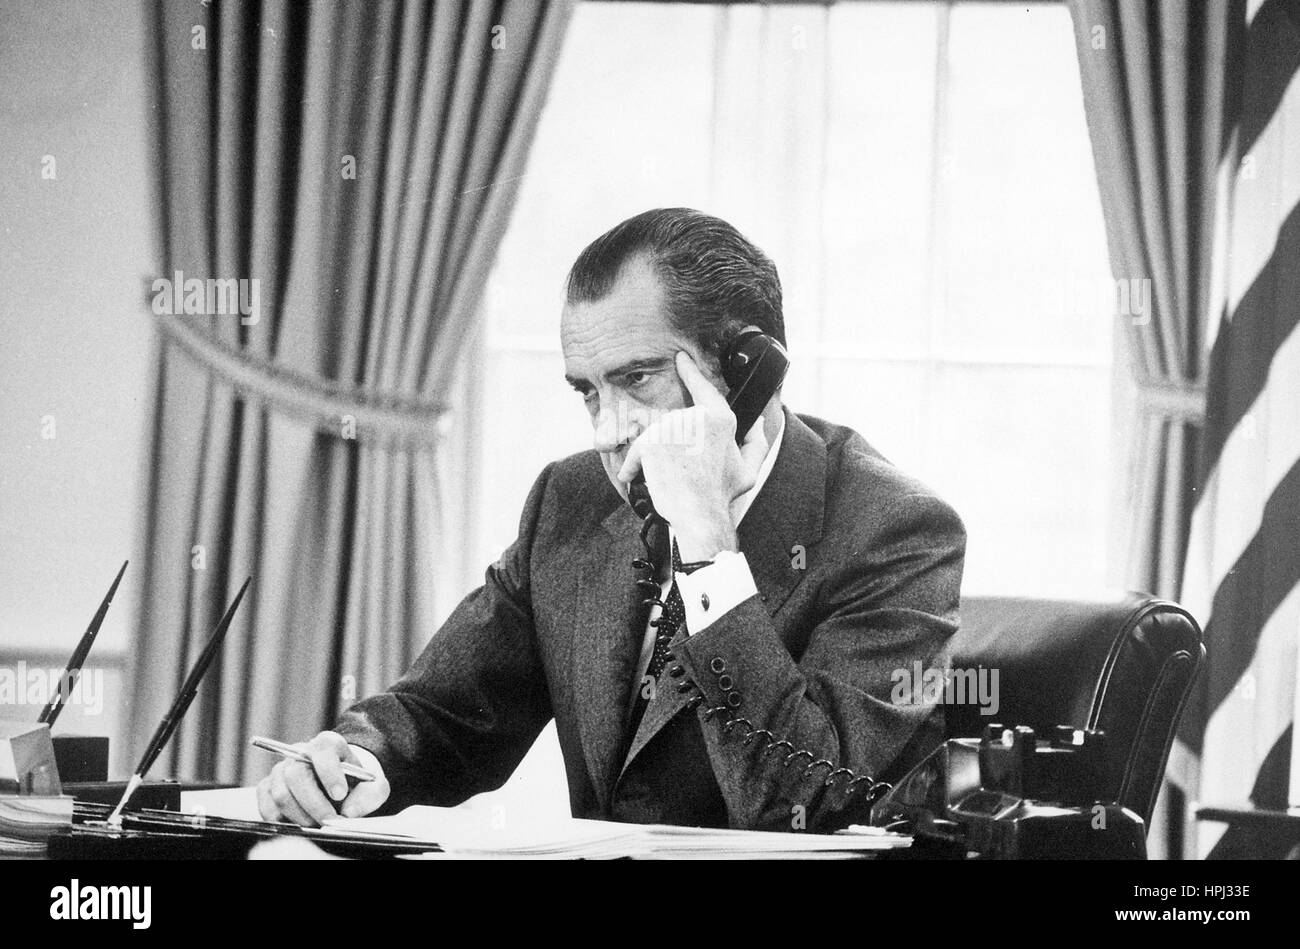 PRESIDENT RICHARD NIXON (1913-1994) in the Oval Office about 1974. Photo: White House official - Stock Image